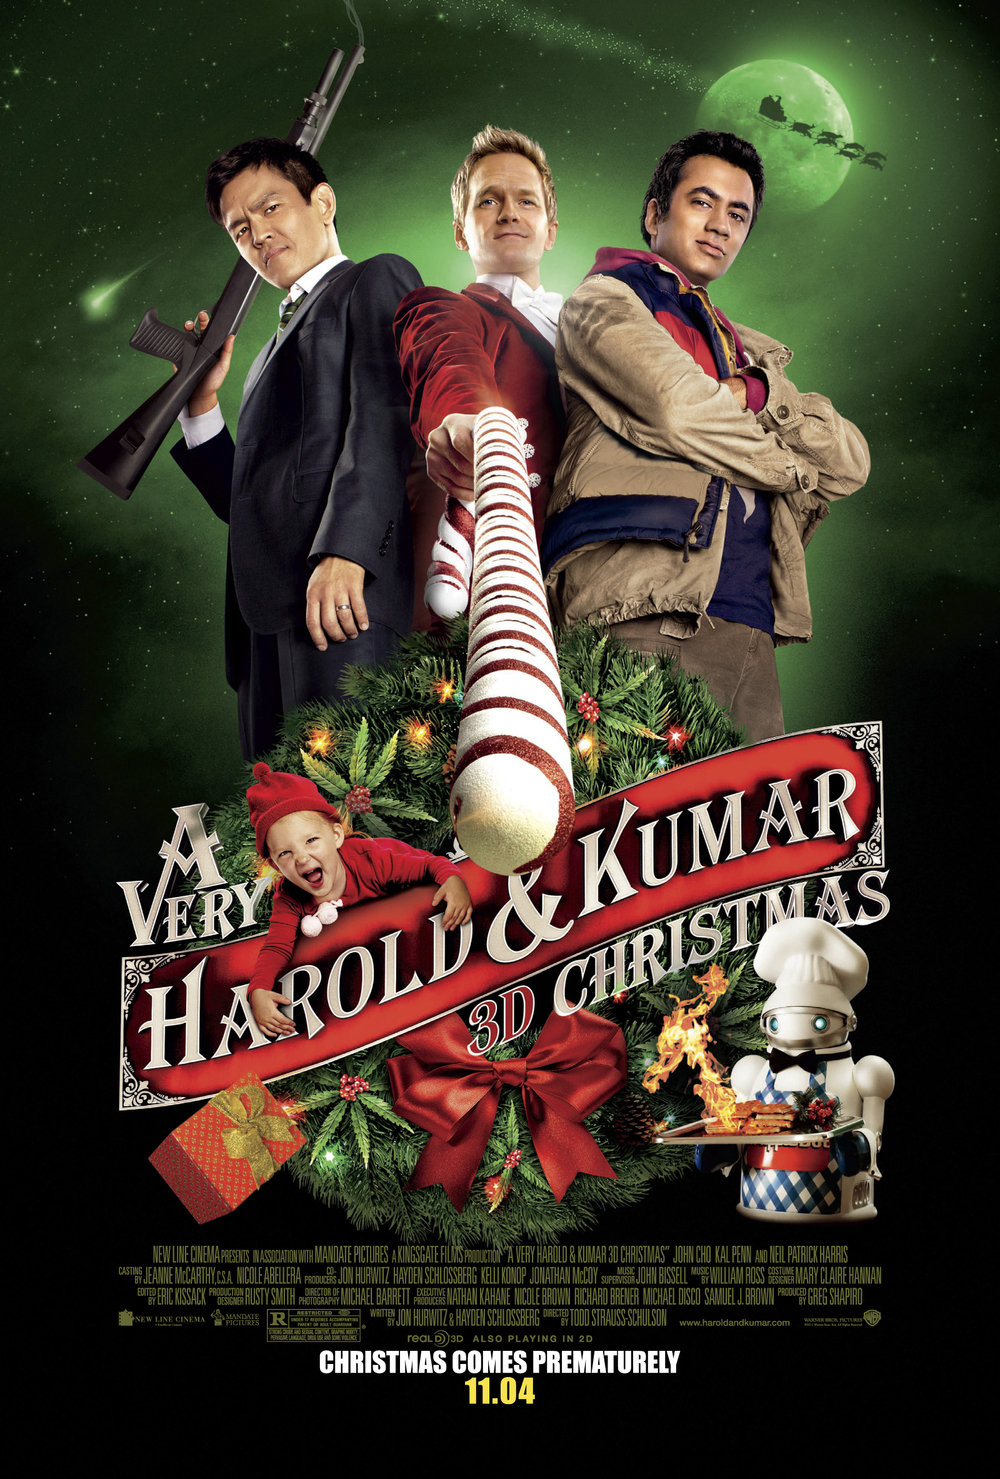 very-harold-kumar-christmas-movie-poster.jpg